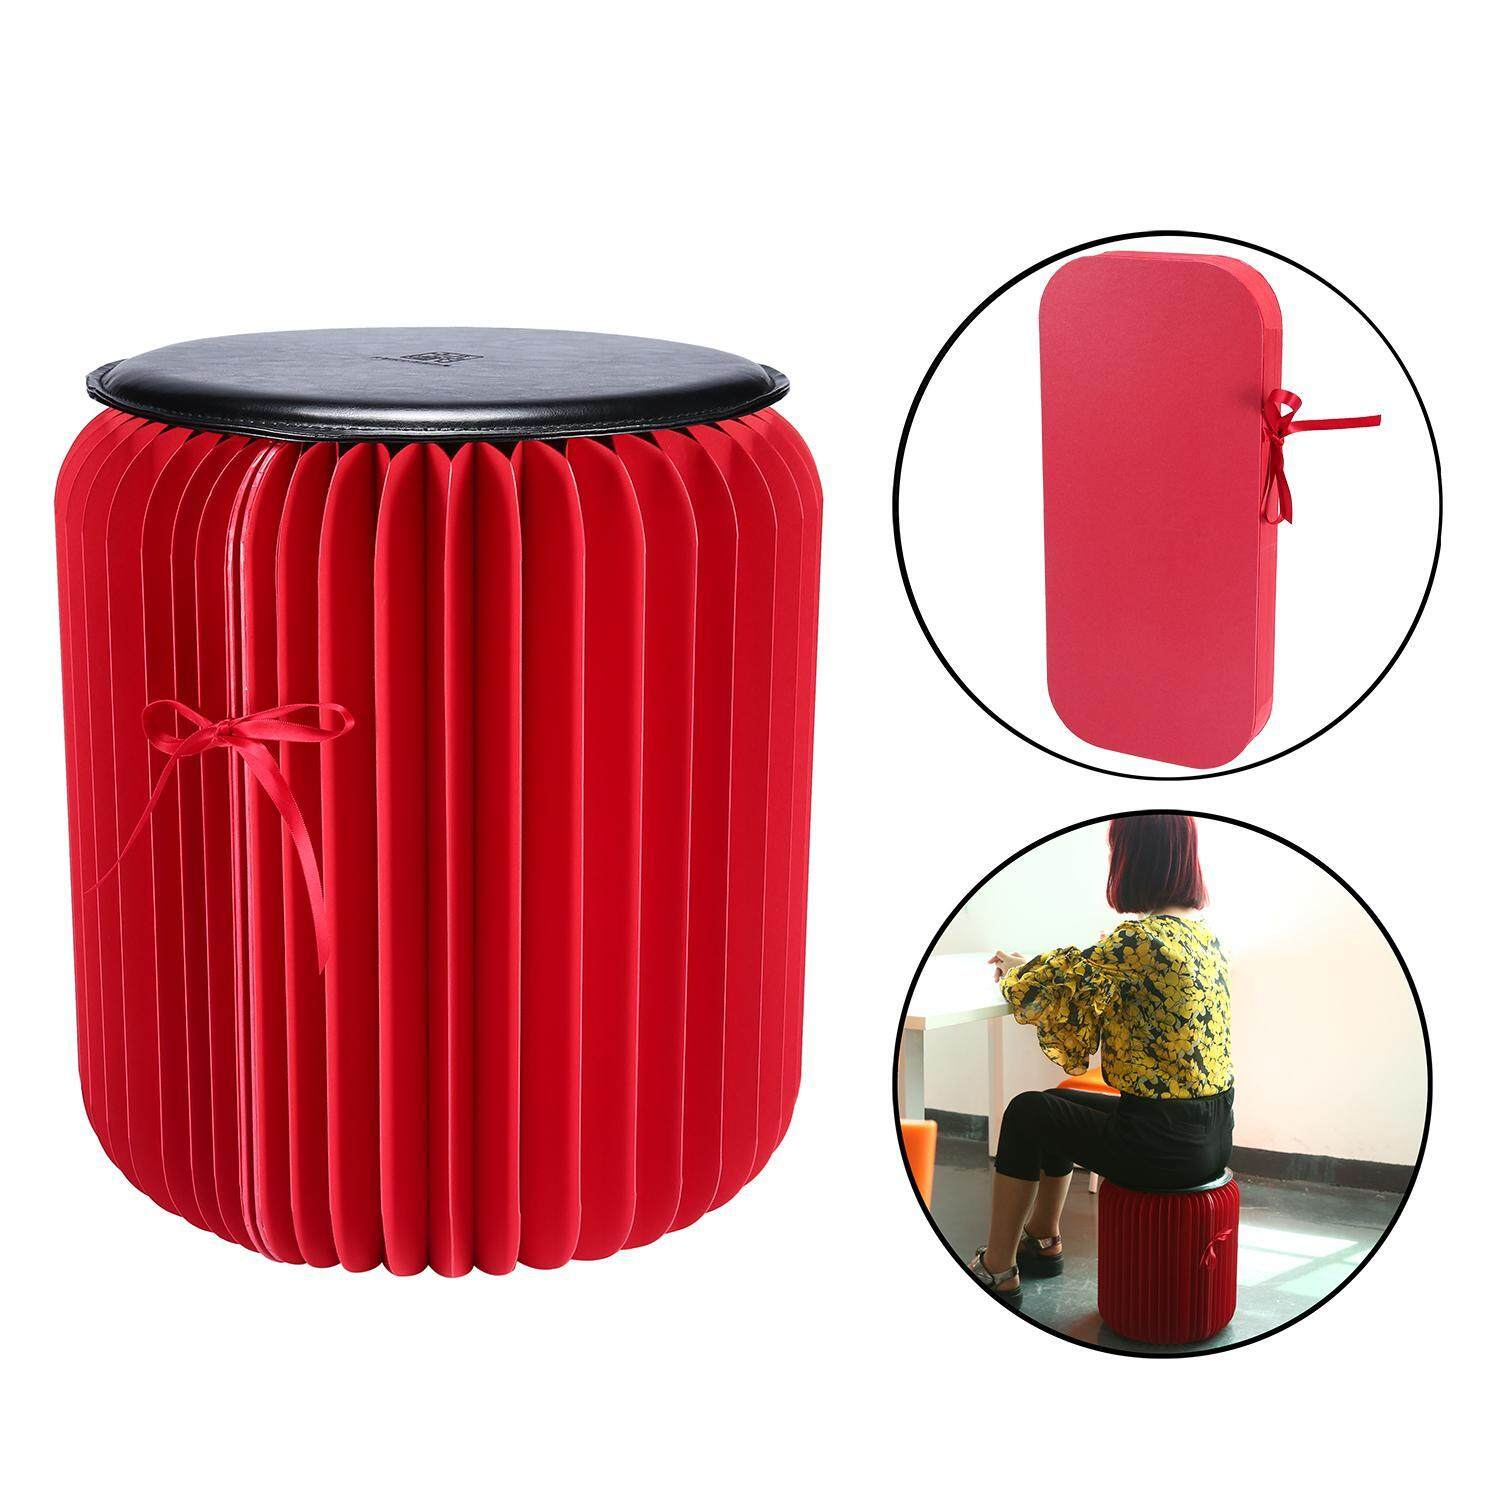 gasfun Flexible Paper Stool,Portable Home Furniture Paper Design Folding Chair with 1pcs Leather Pad,Red+Black Large Size - intl